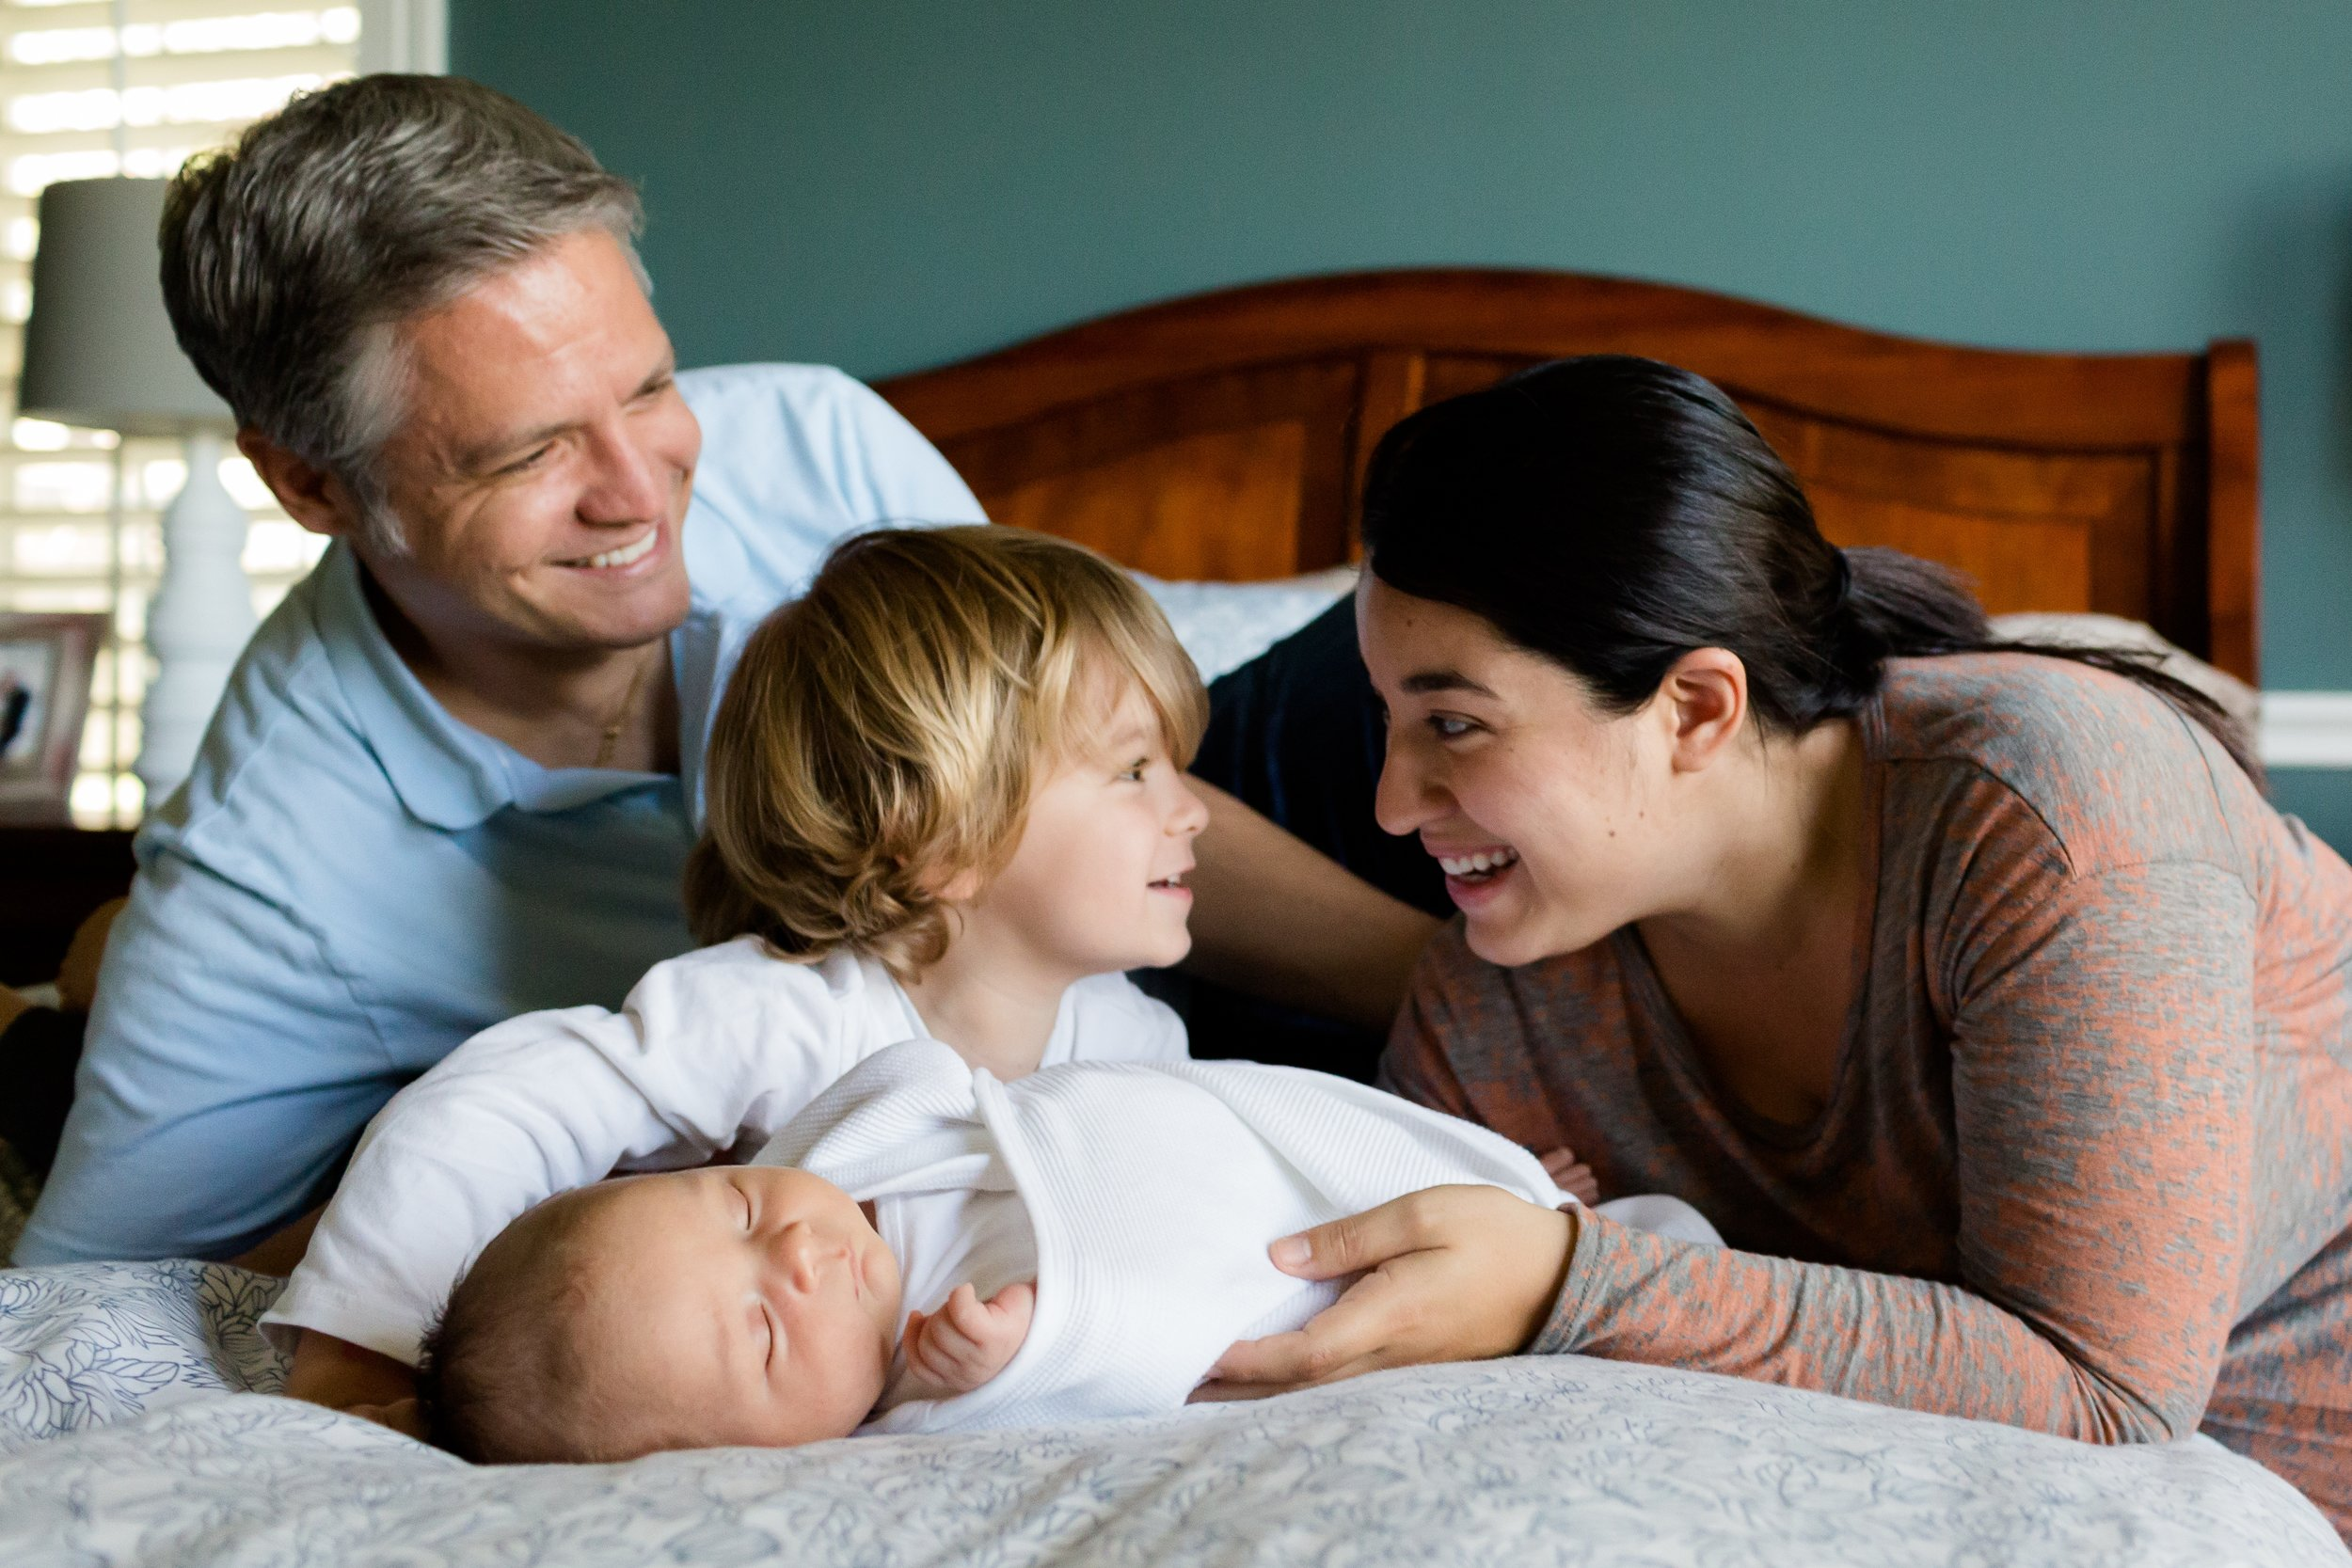 man-person-people-woman-father-child-934029-pxhere.com.jpg